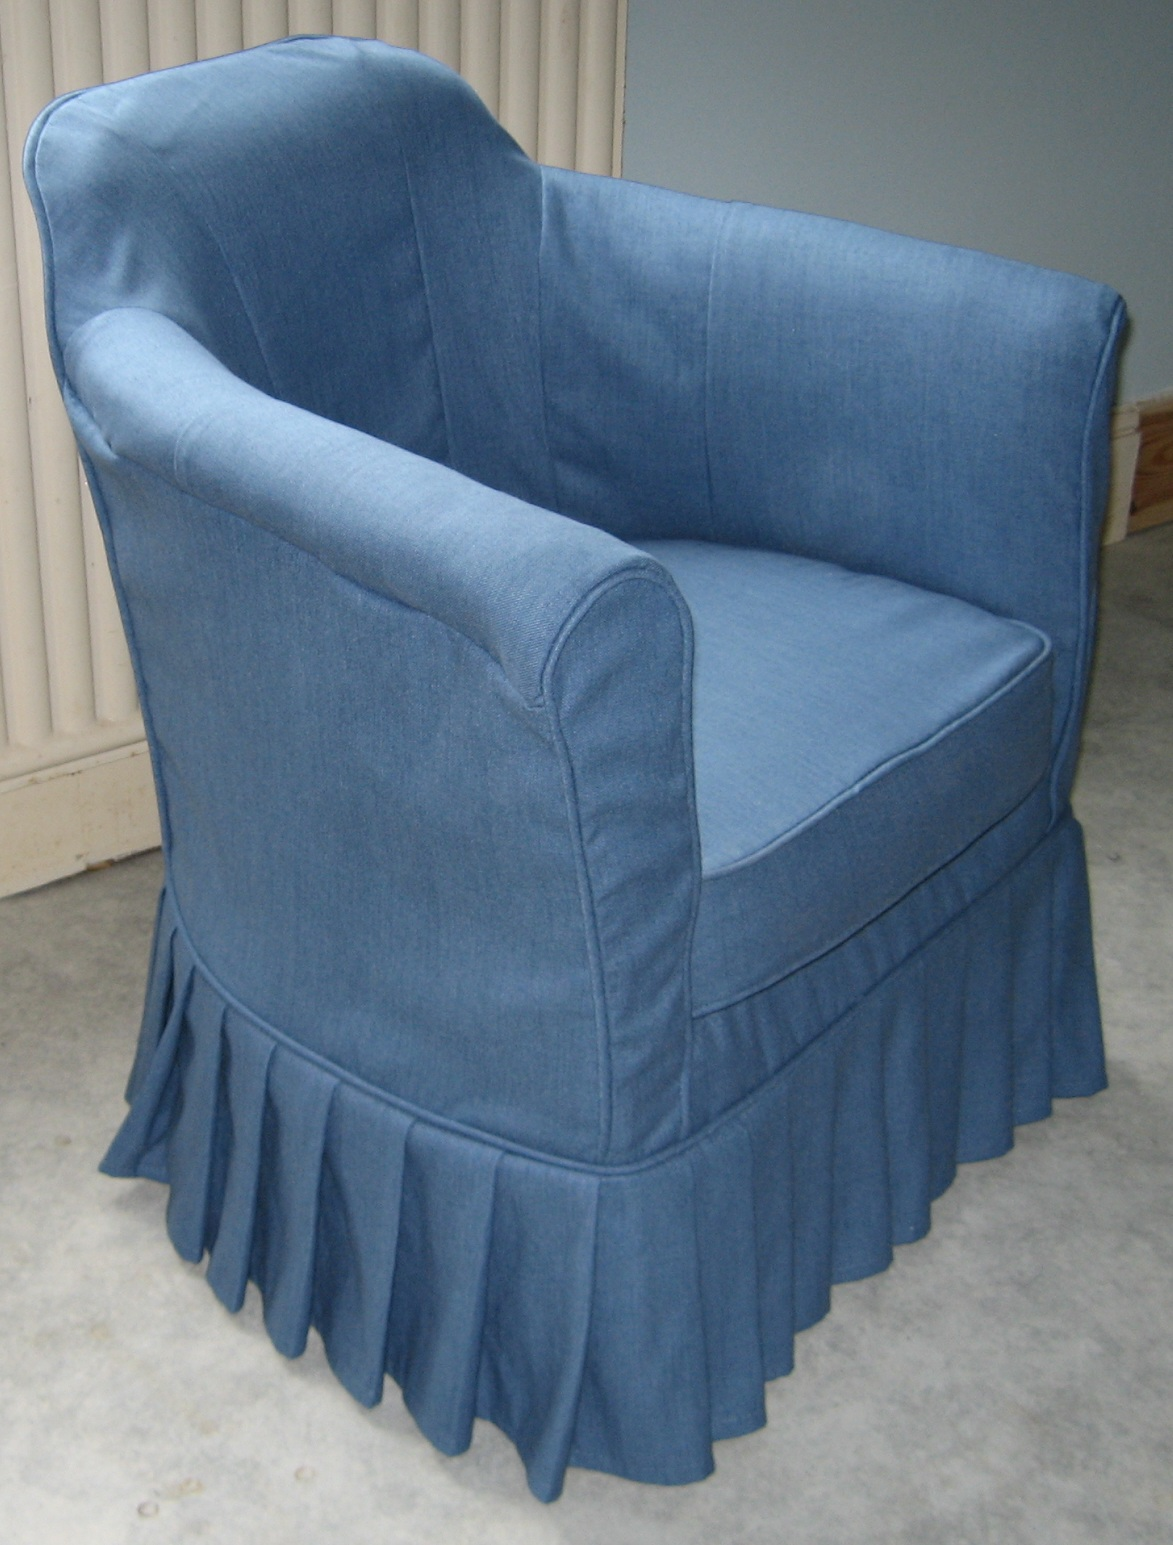 tub chair covers for sale memory foam bean bag slipcovers on now elegant changes